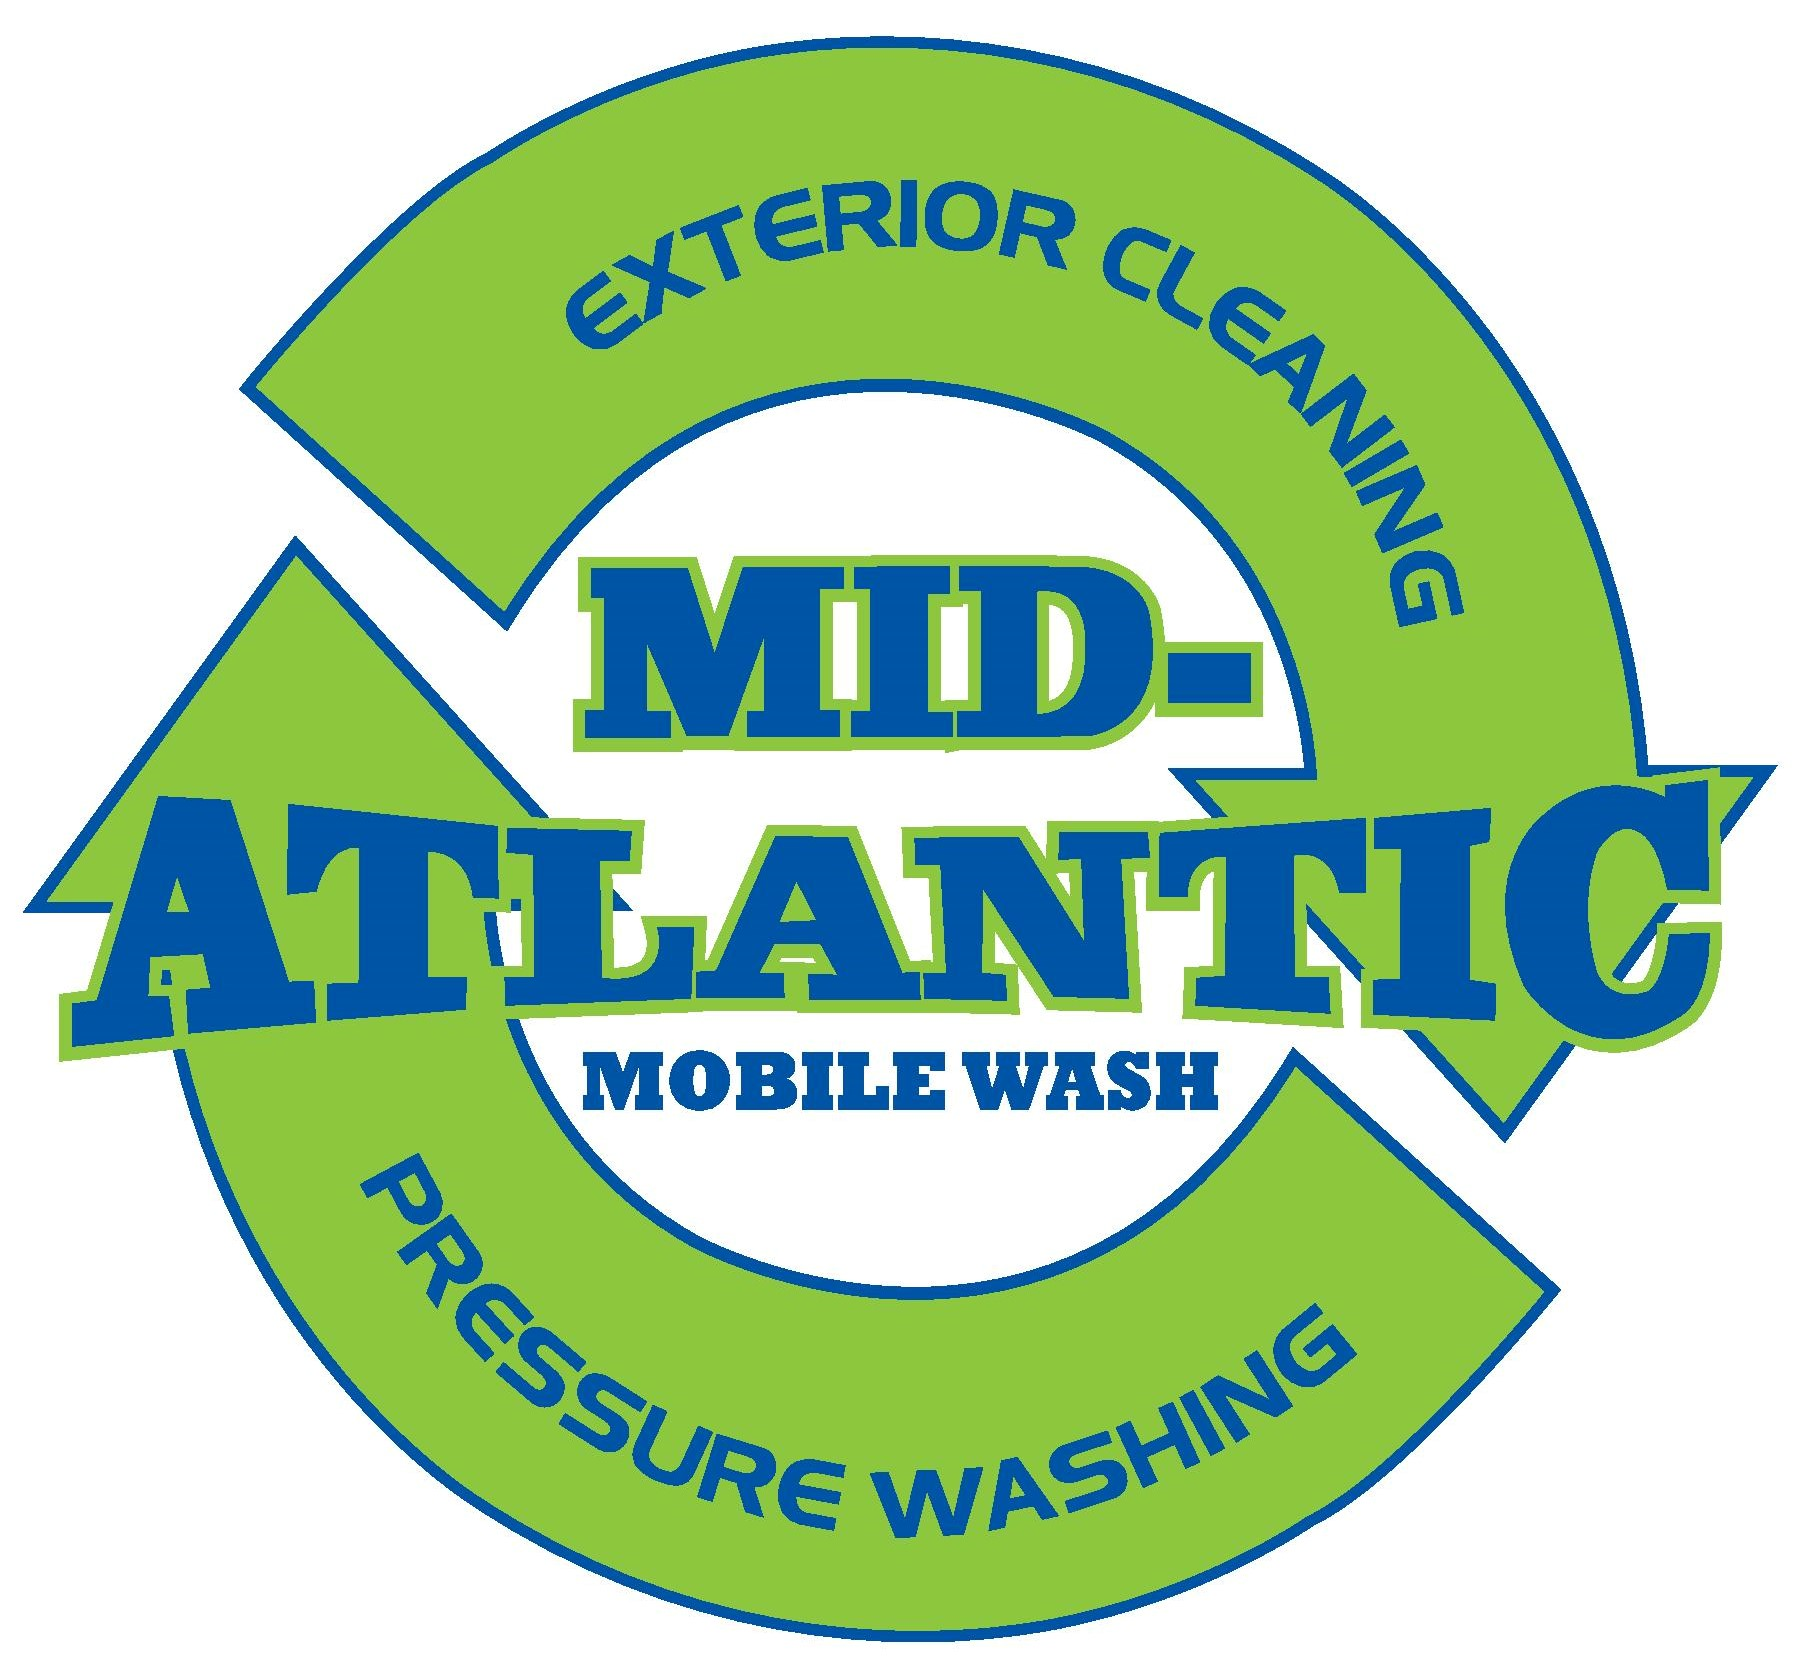 Mid Atlantic Mobile Wash